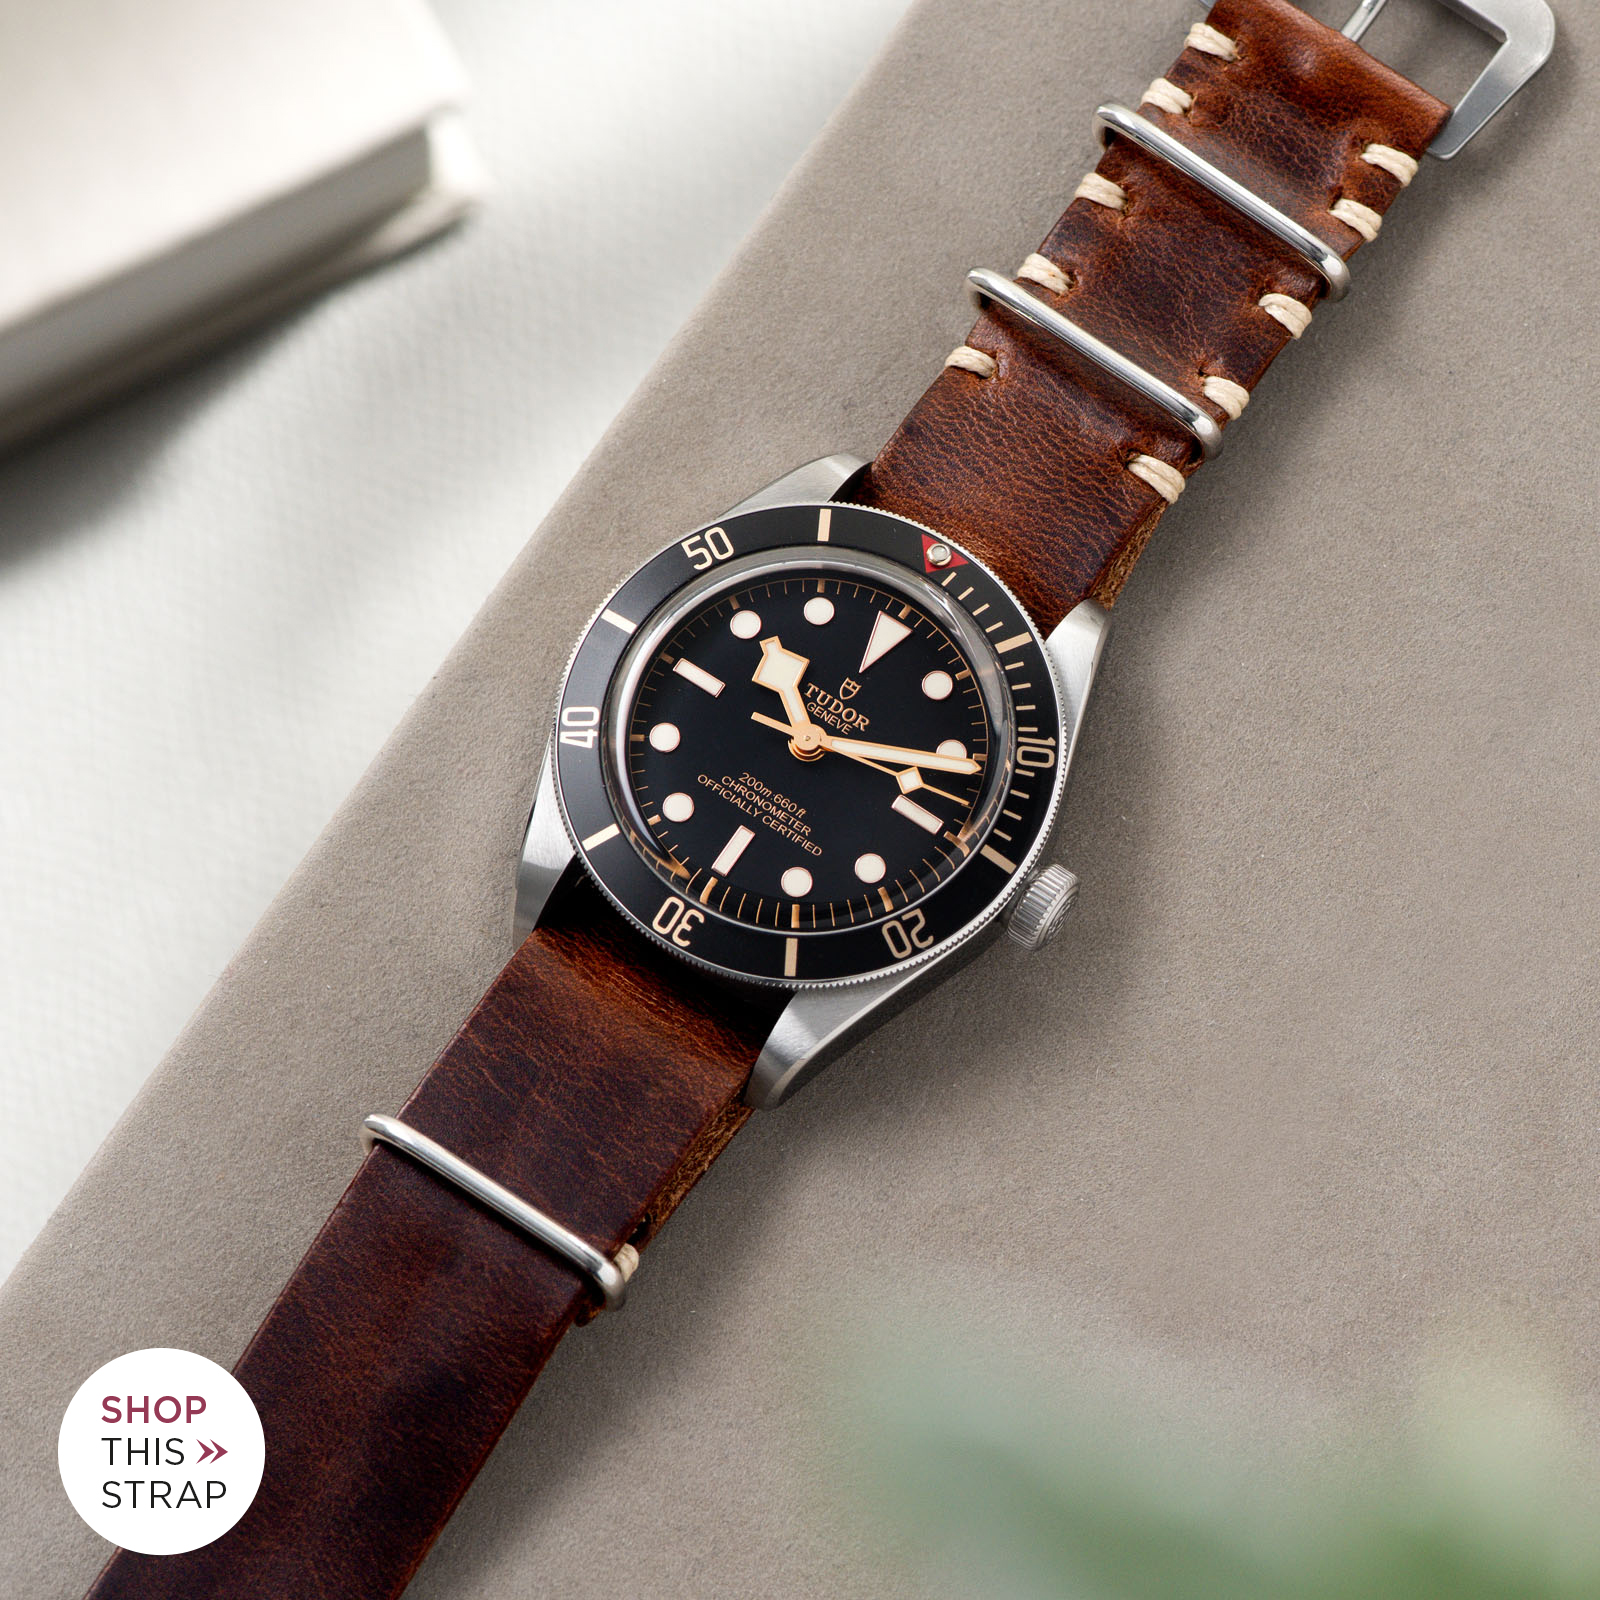 Bulang and Sons_Strap Guide_Tudor Black Bay 58_Siena Brown Nato Leather Watch Strap